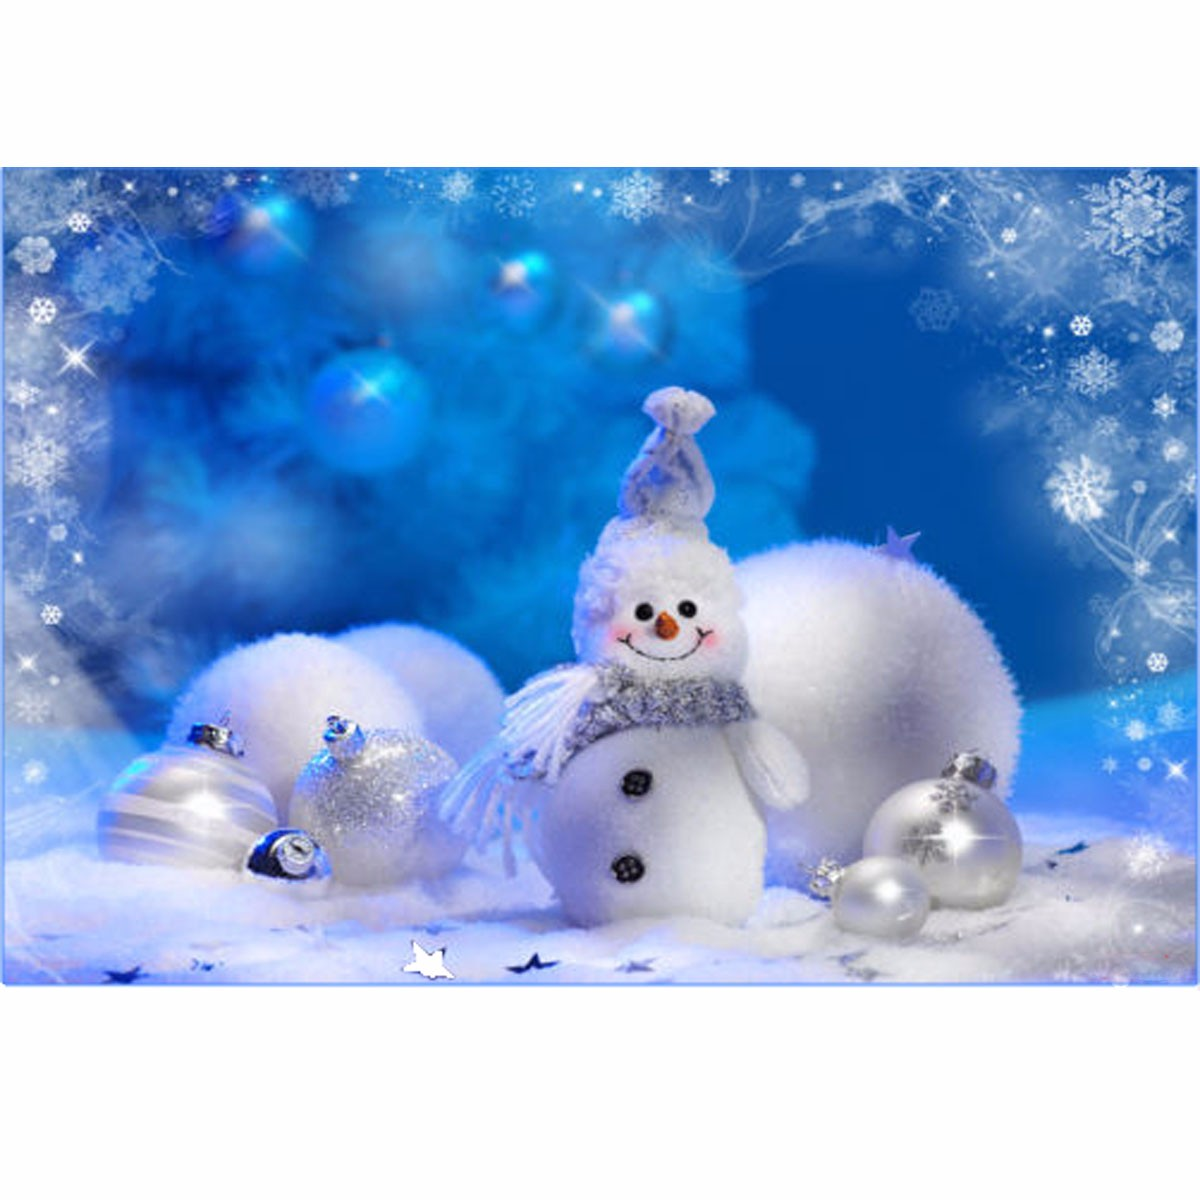 3d Vinyl Wallpaper Snow Vinyl Fabric Christmas Snowman Studio Photography